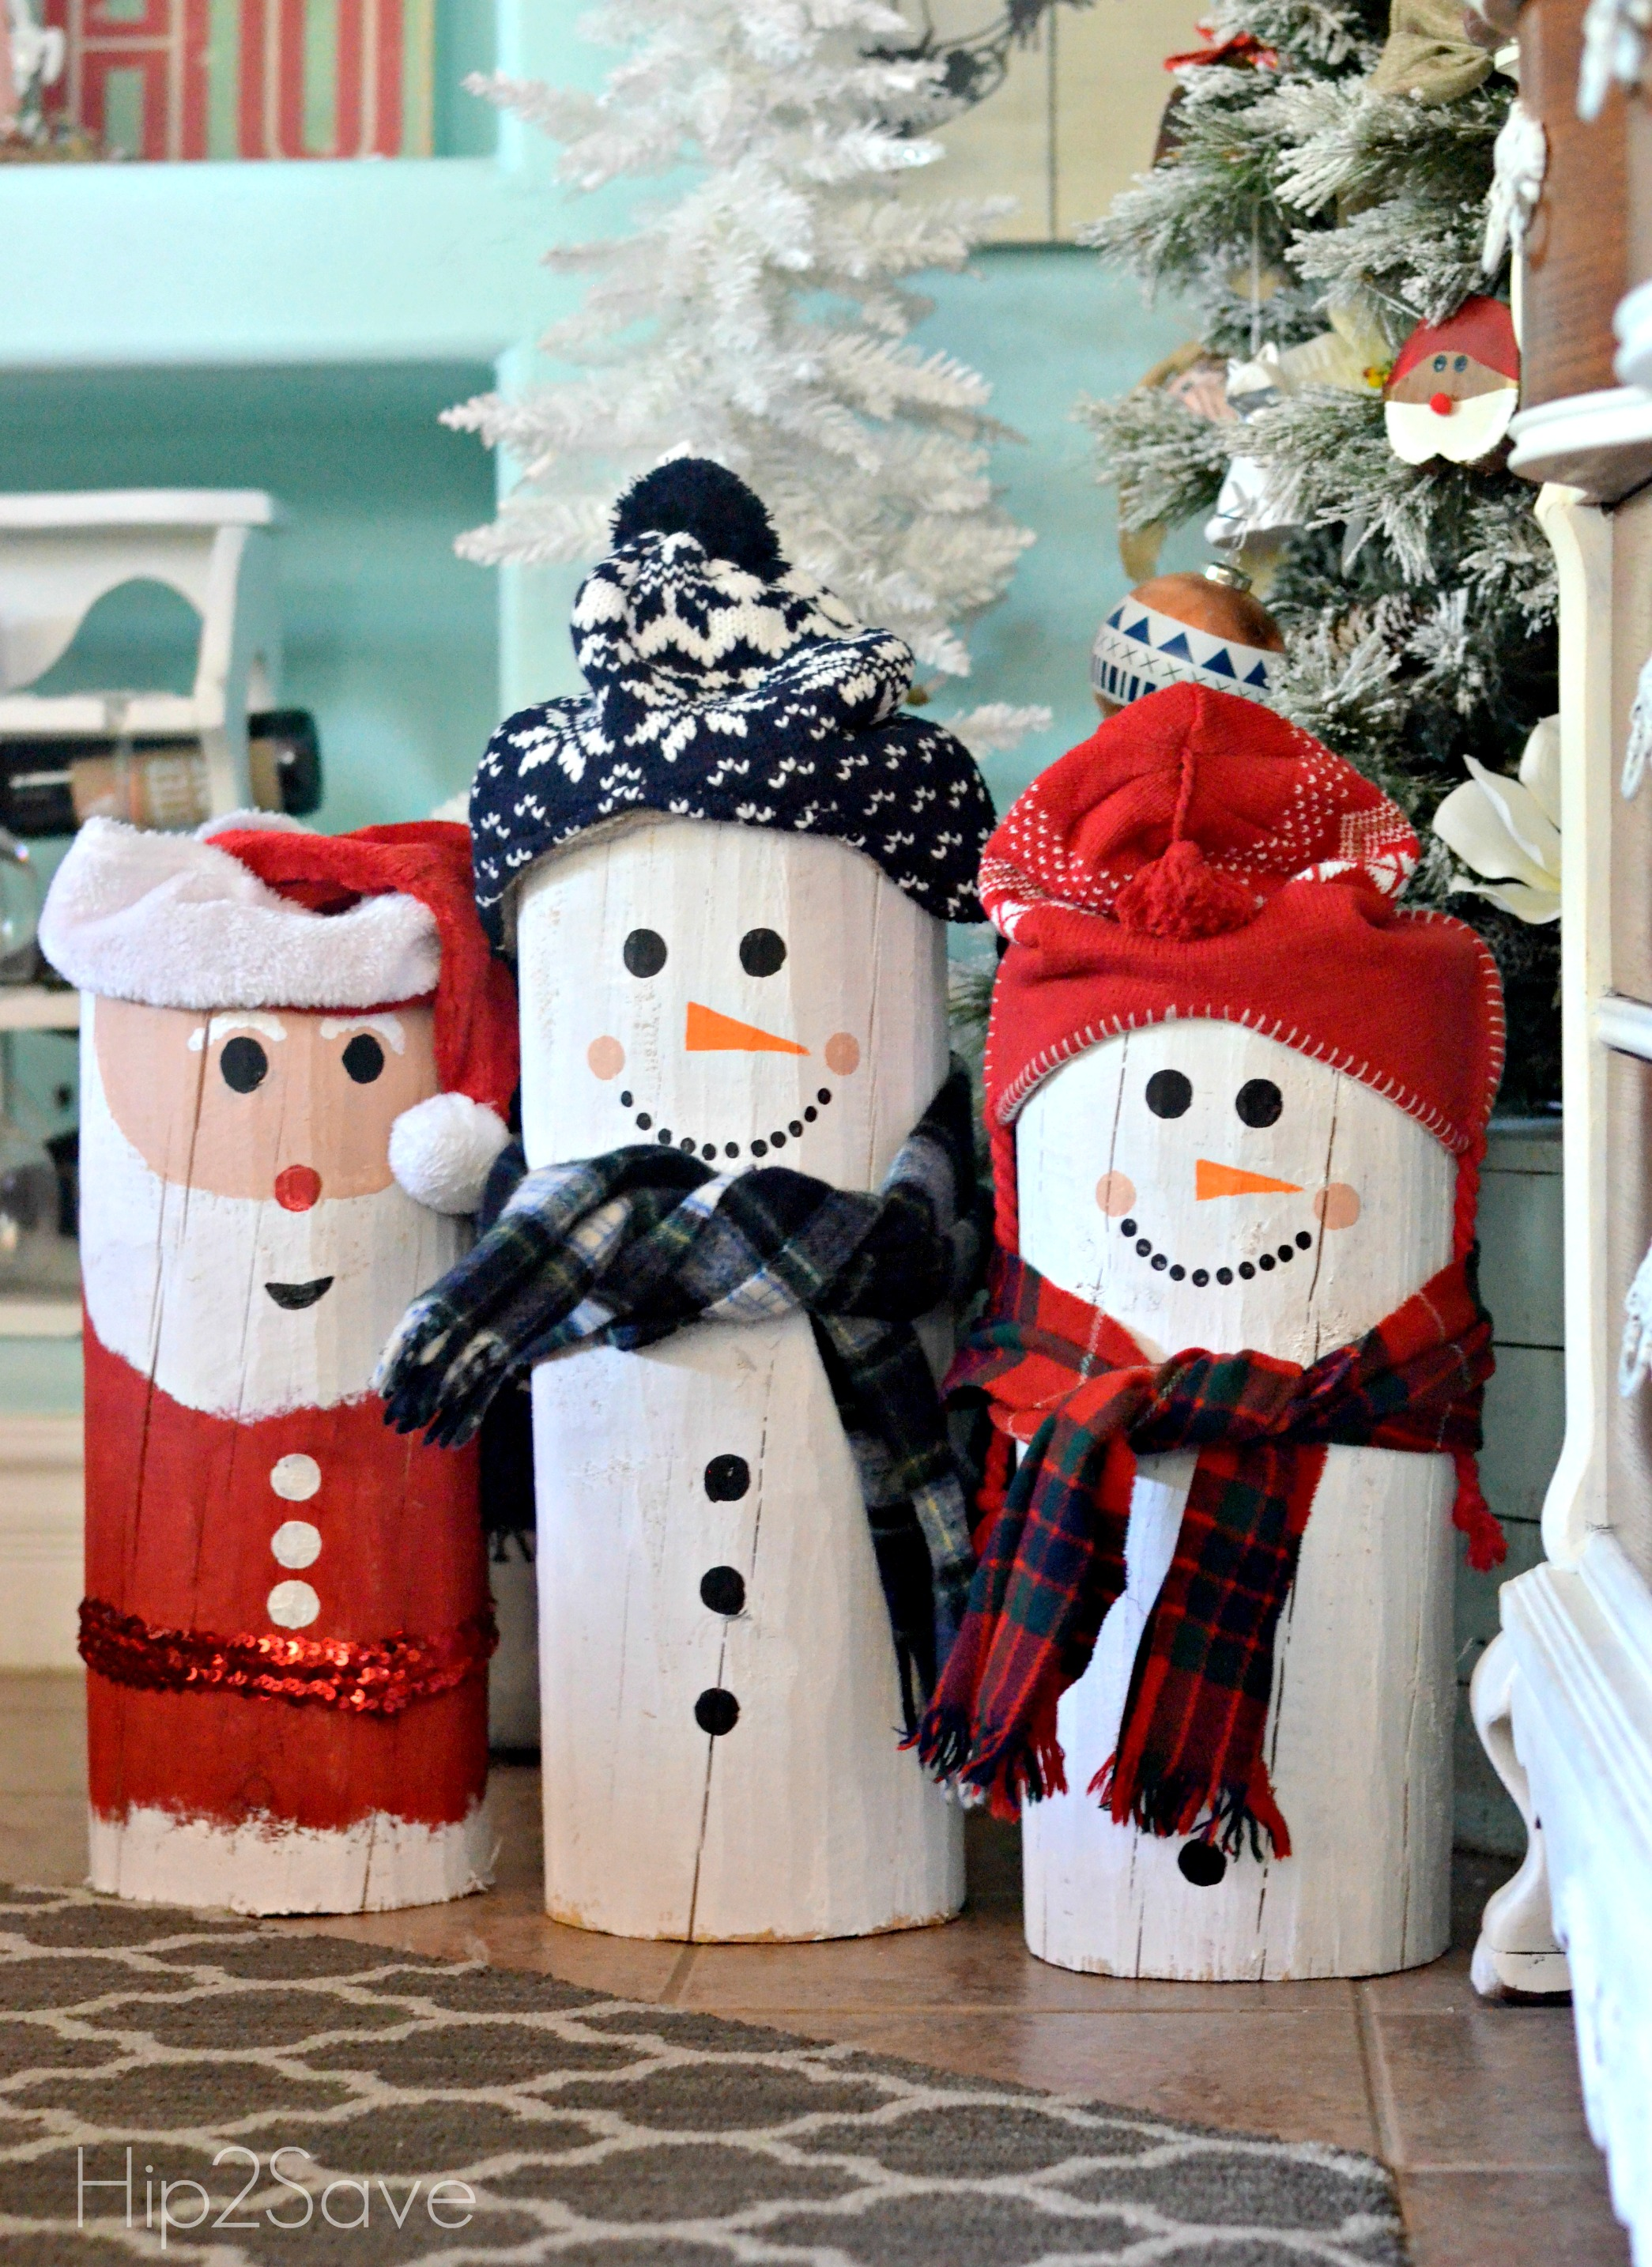 diy-santa-snowman-painted-logs-hip2save-com